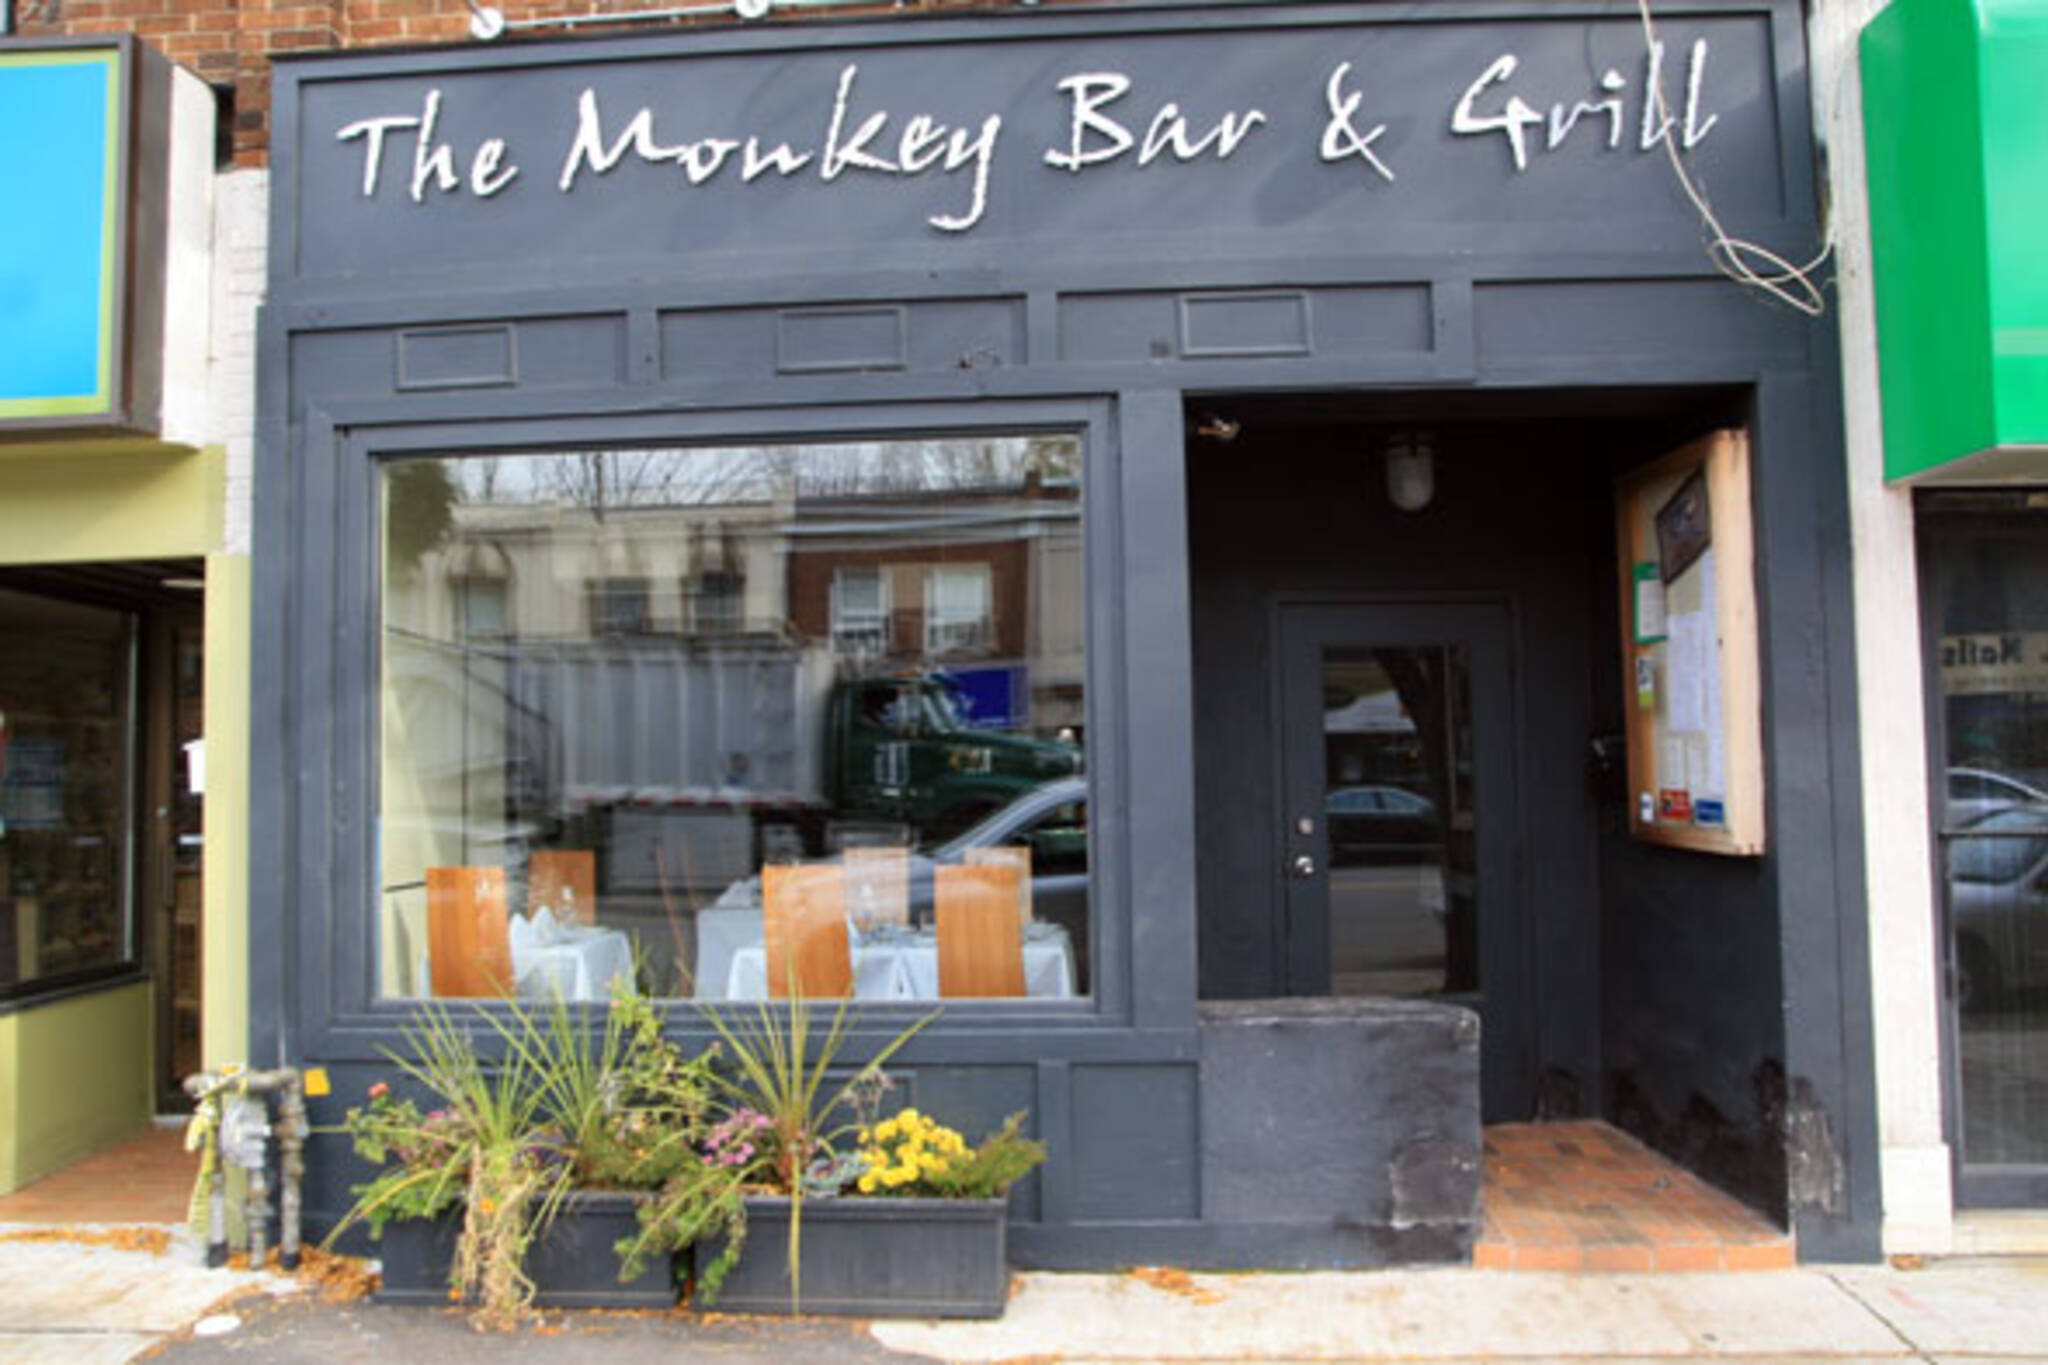 Monkey Bar and Grill